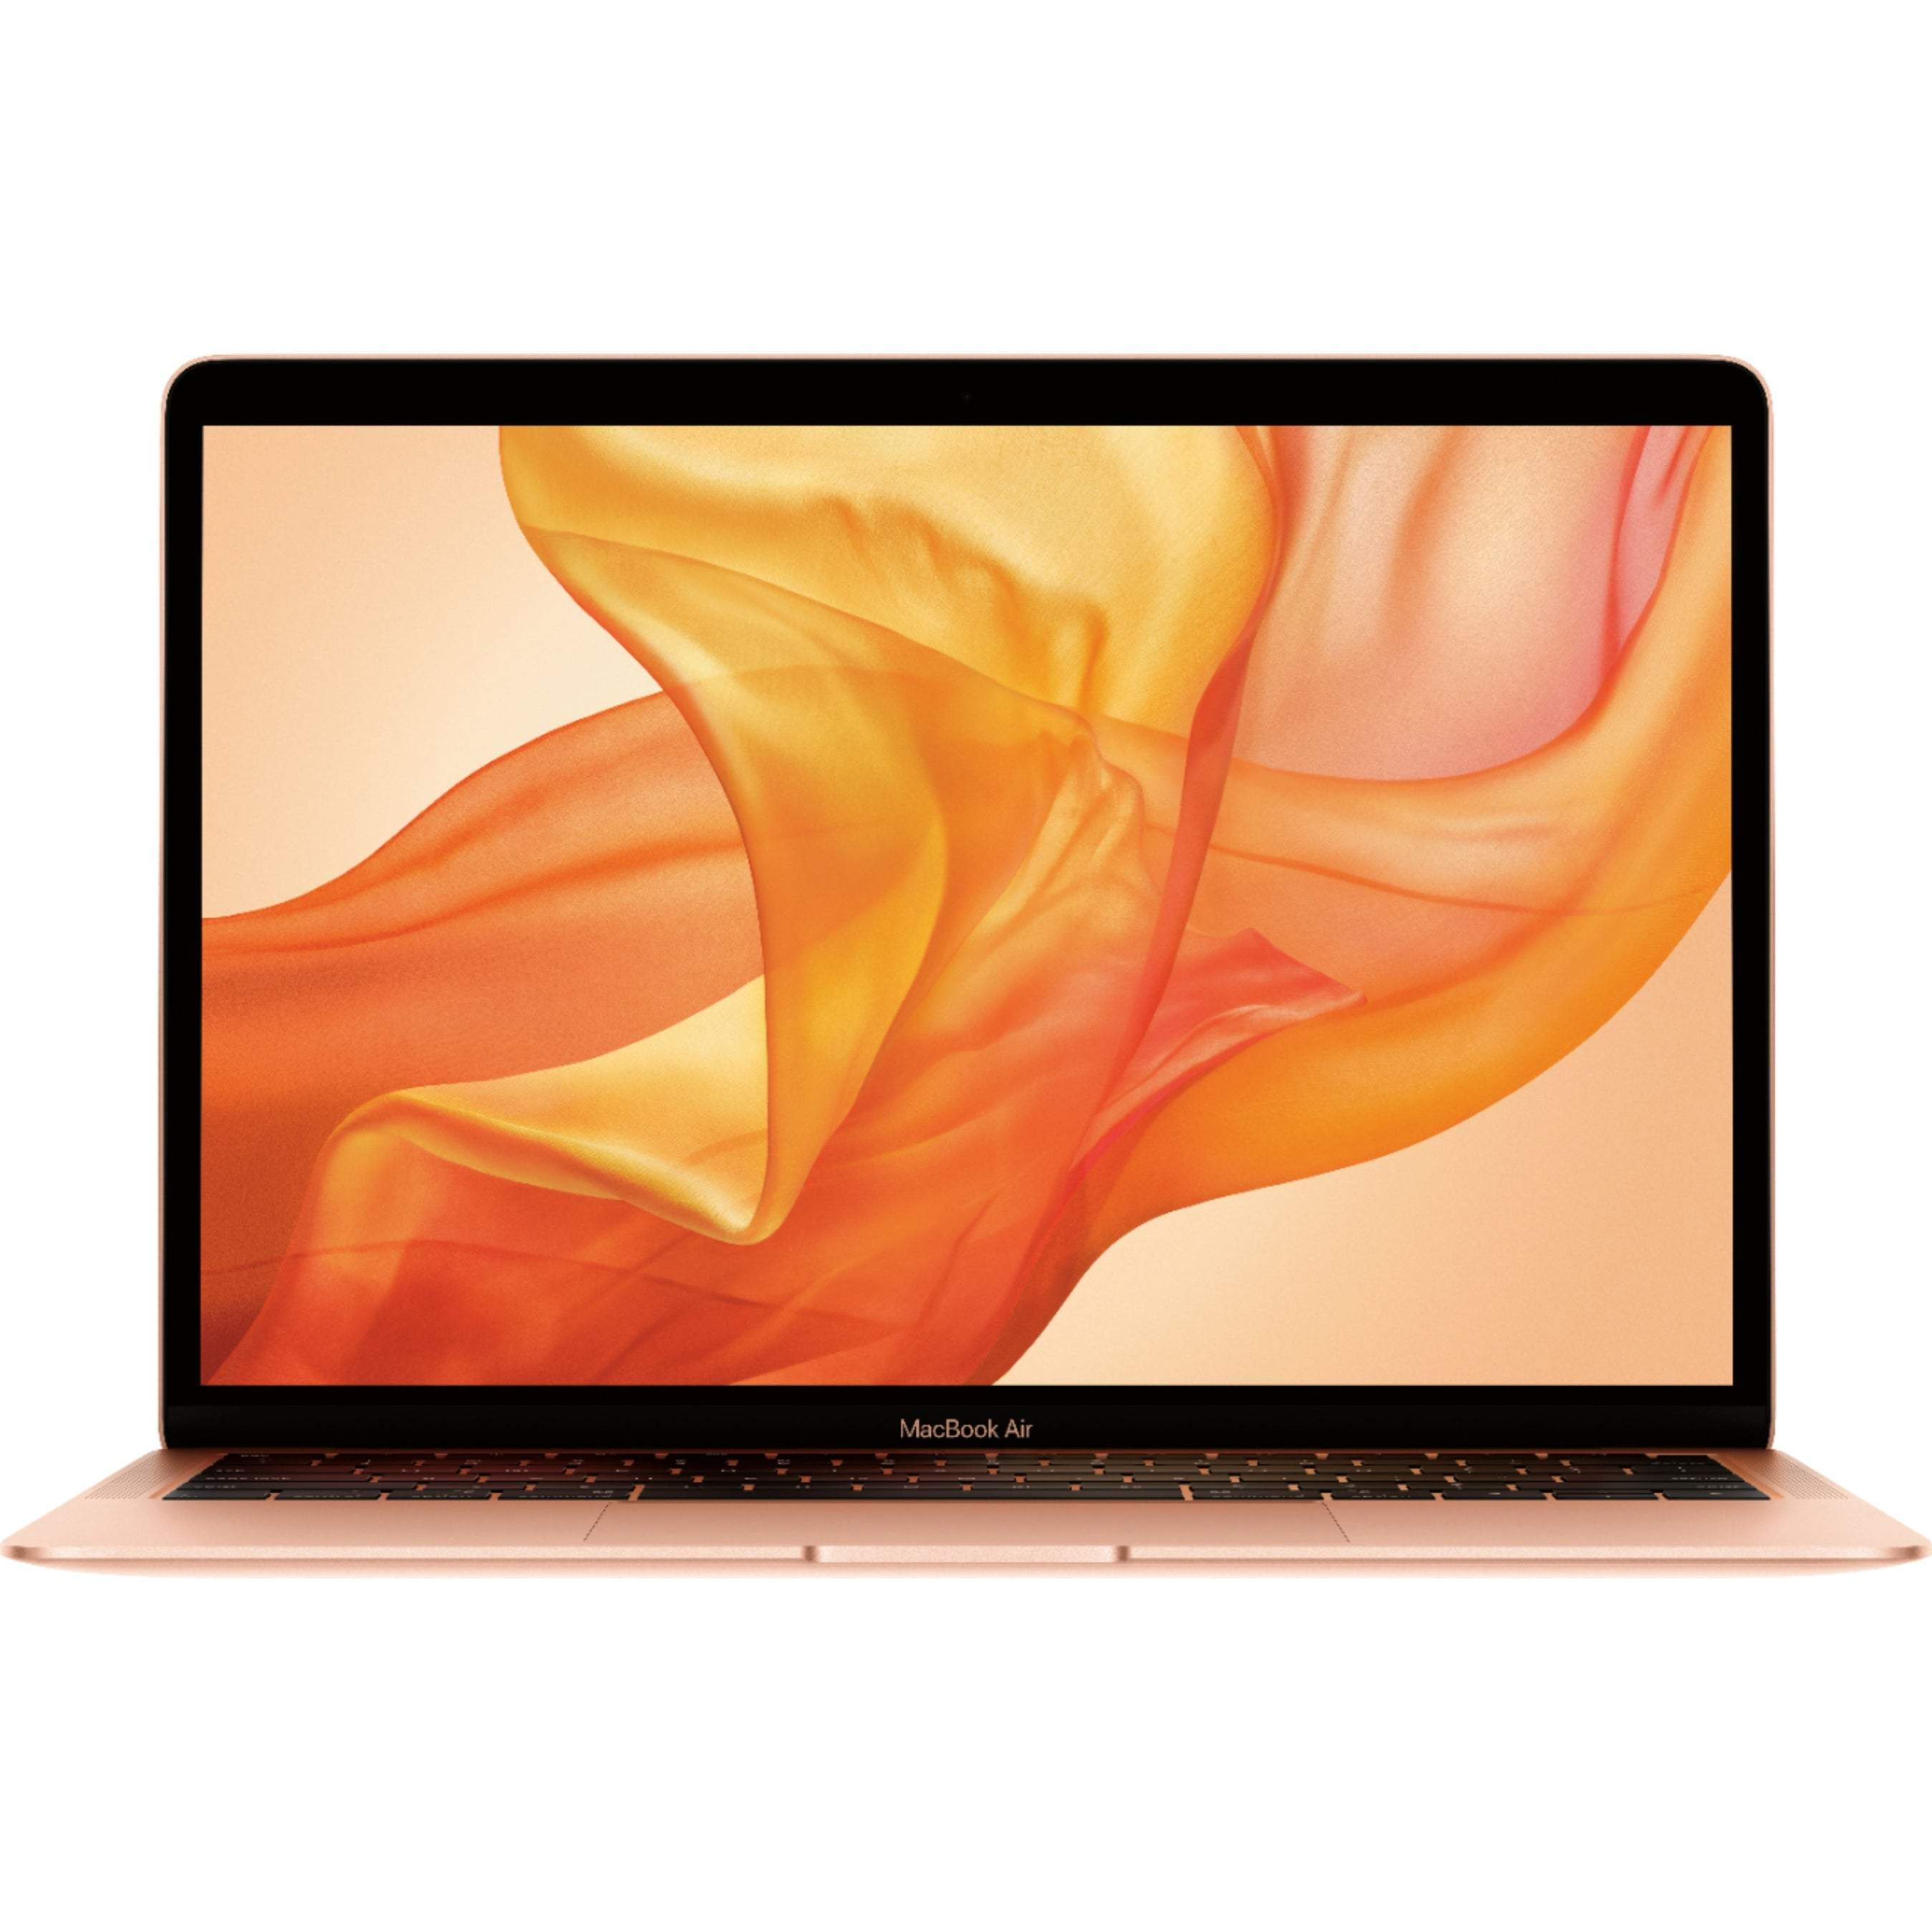 NEW Apple MacBook Air 2020 (1.1GHz quad-Core Intel Core i5, 8GB RAM, 512GB SSD) - iStock BD